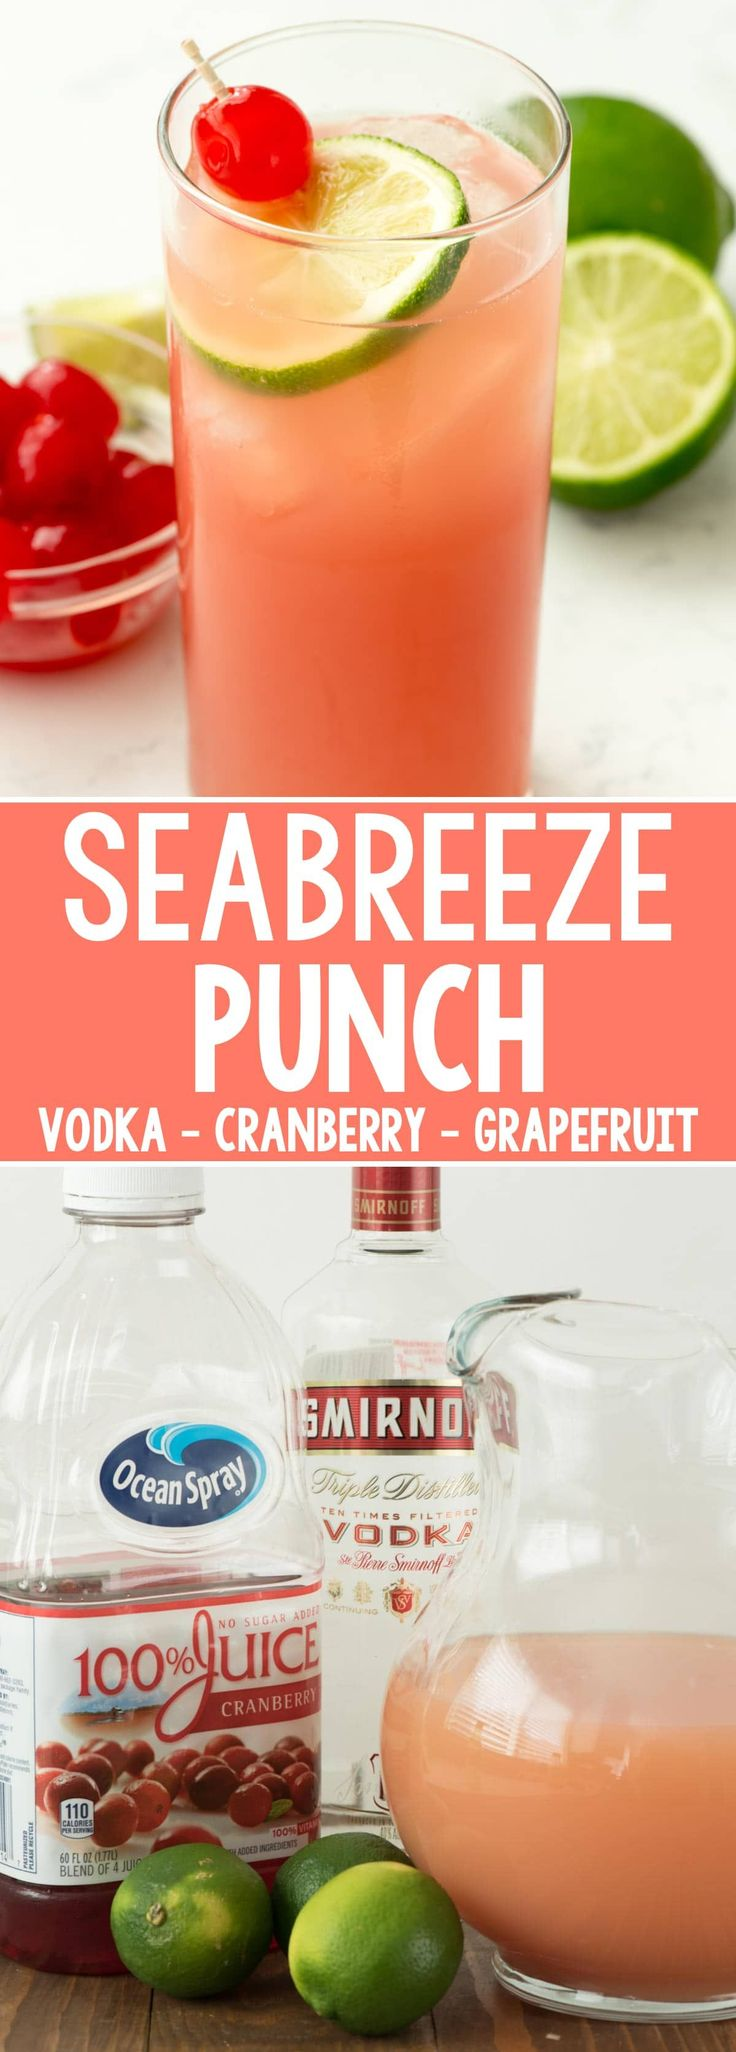 Best 25 easy vodka drinks ideas on pinterest vodka for Vodka cocktails recipes easy